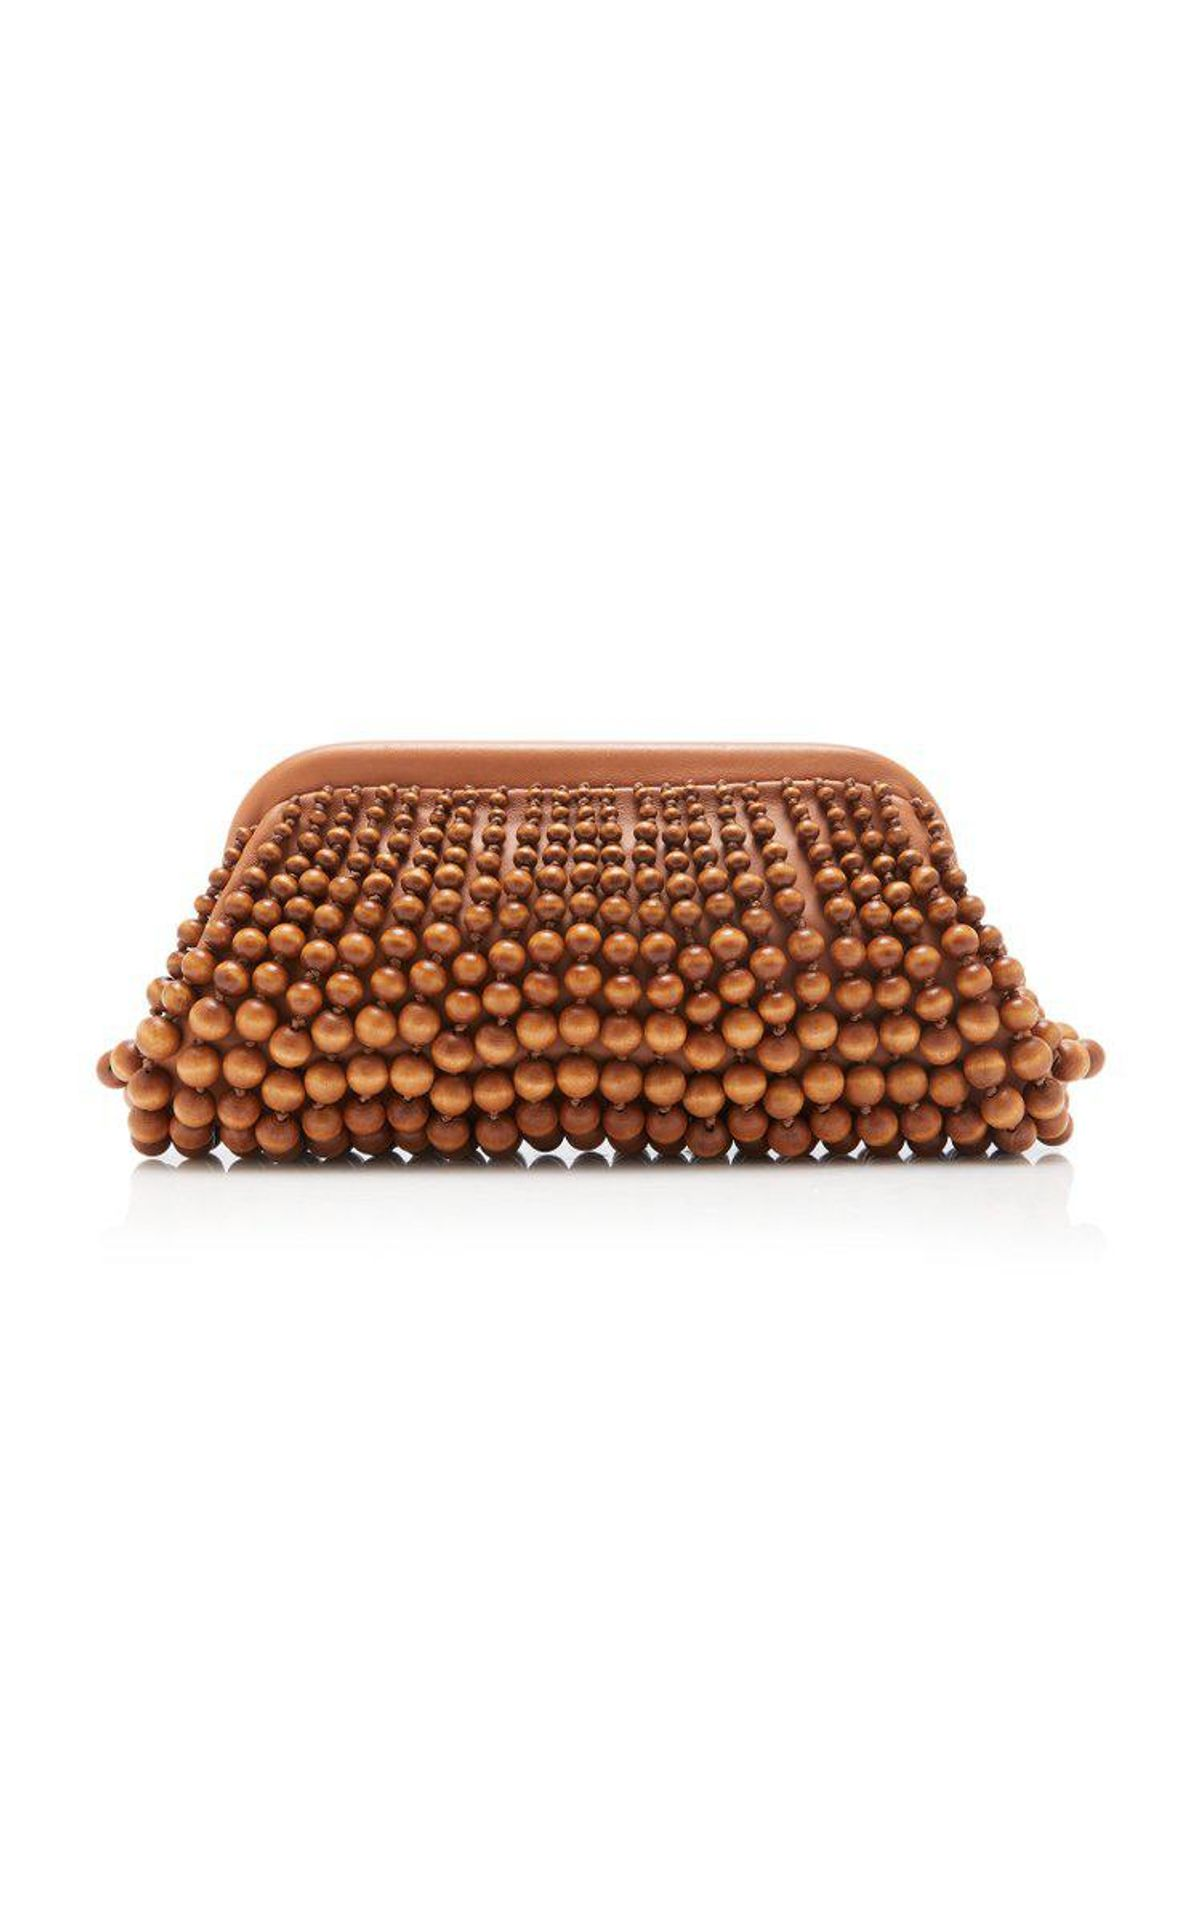 cult gaia nia beaded wood leather clutch